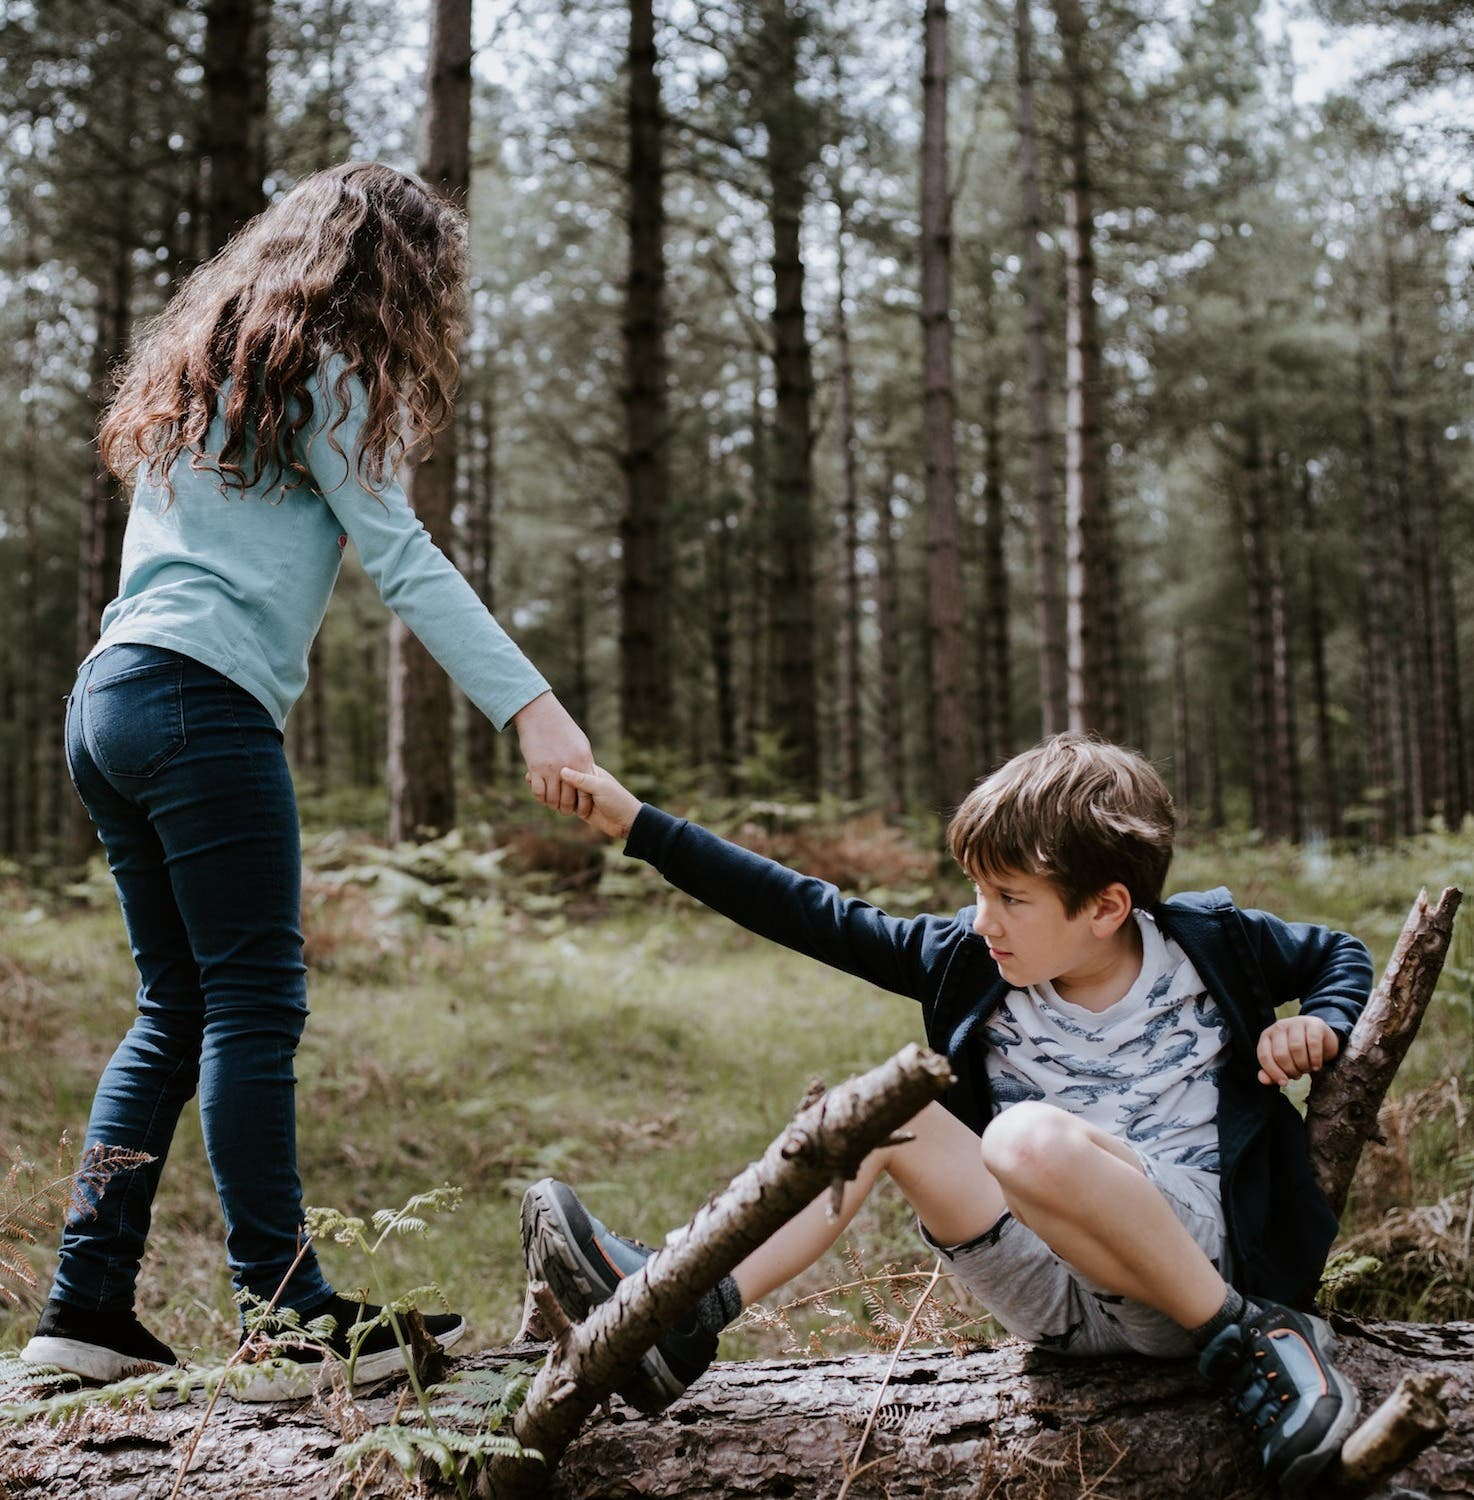 Girl helping boy up from sitting down